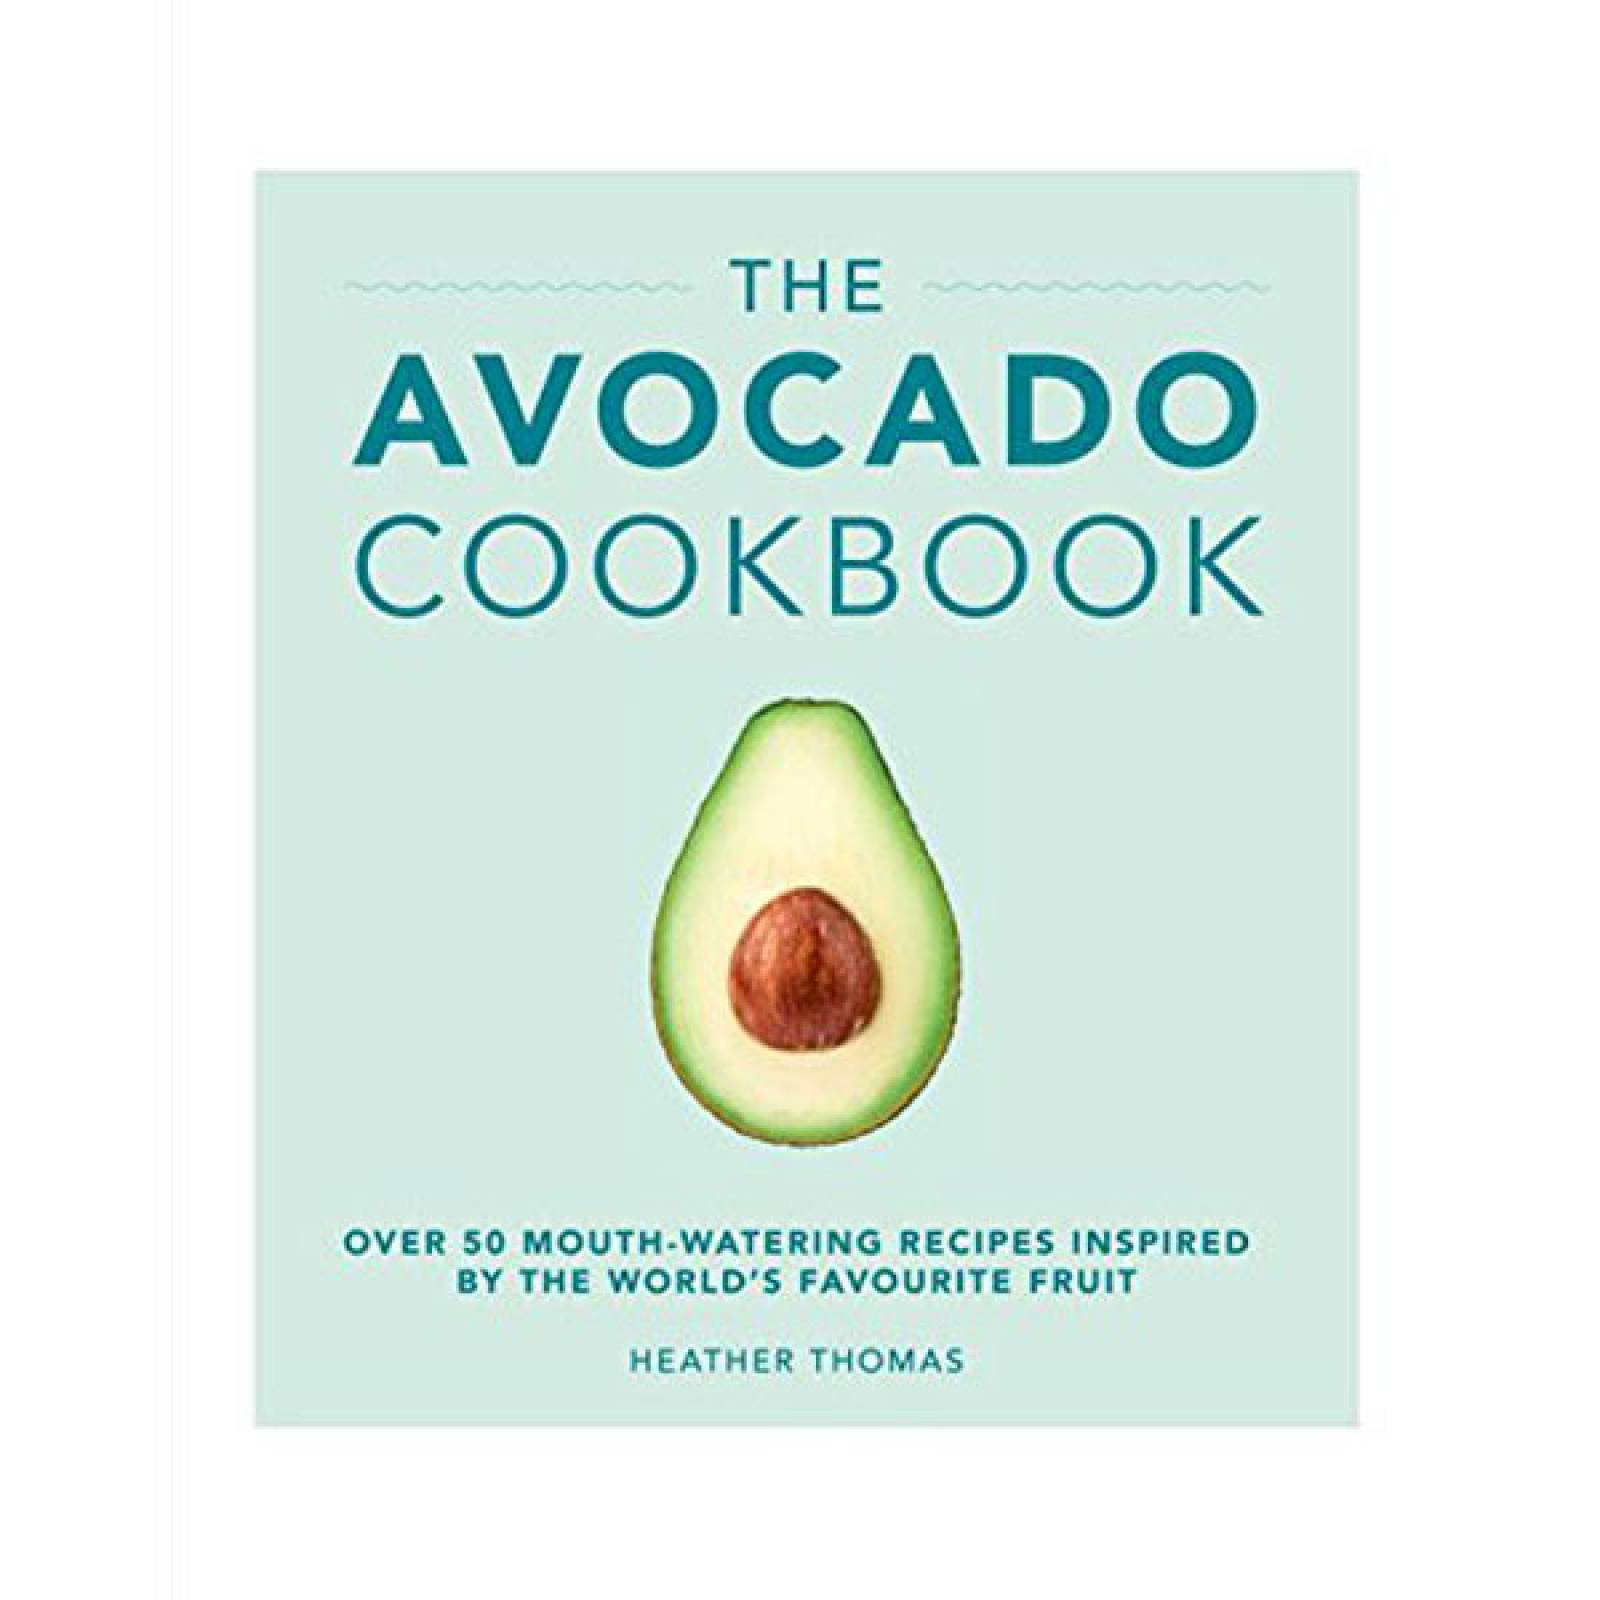 Avocado Cookbook Hardback Book thumbnails